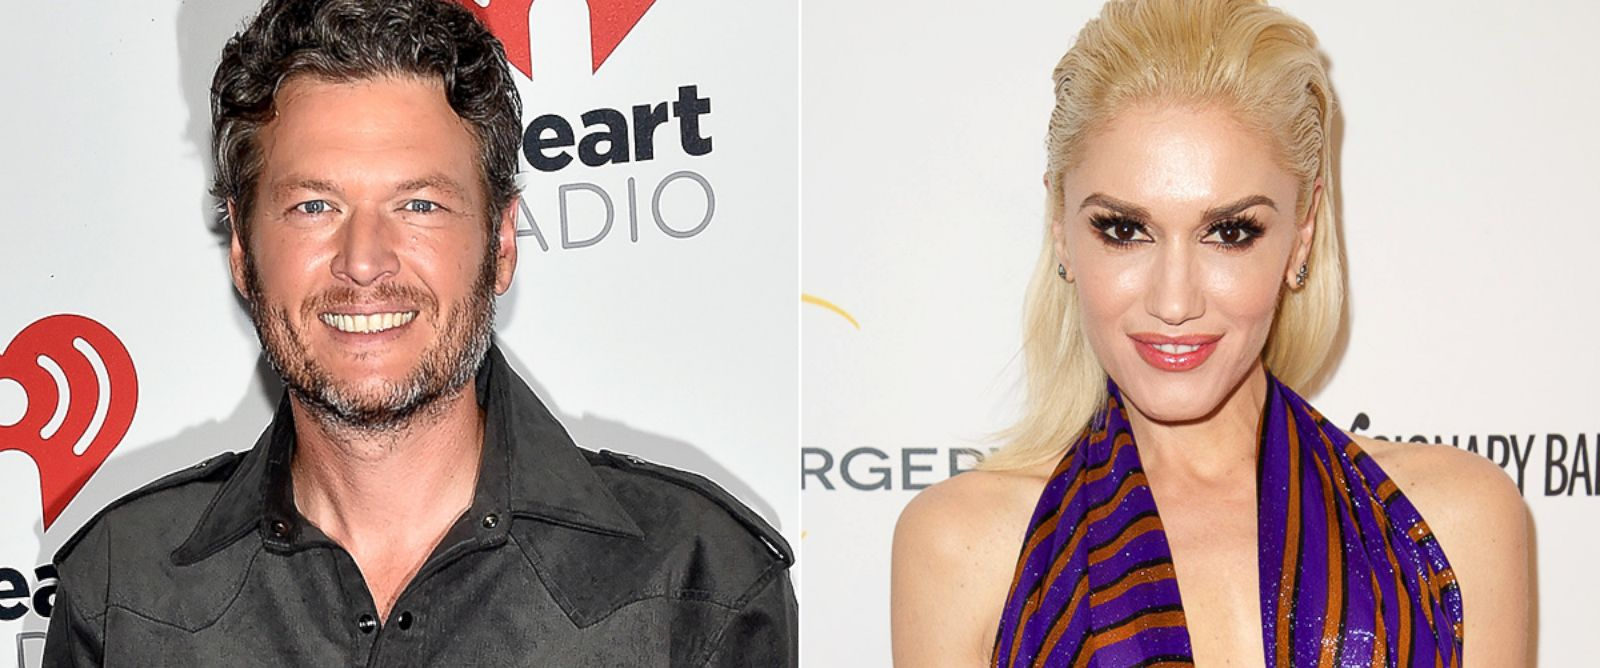 PHOTO: Blake Shelton, left, and Gwen Stefani.